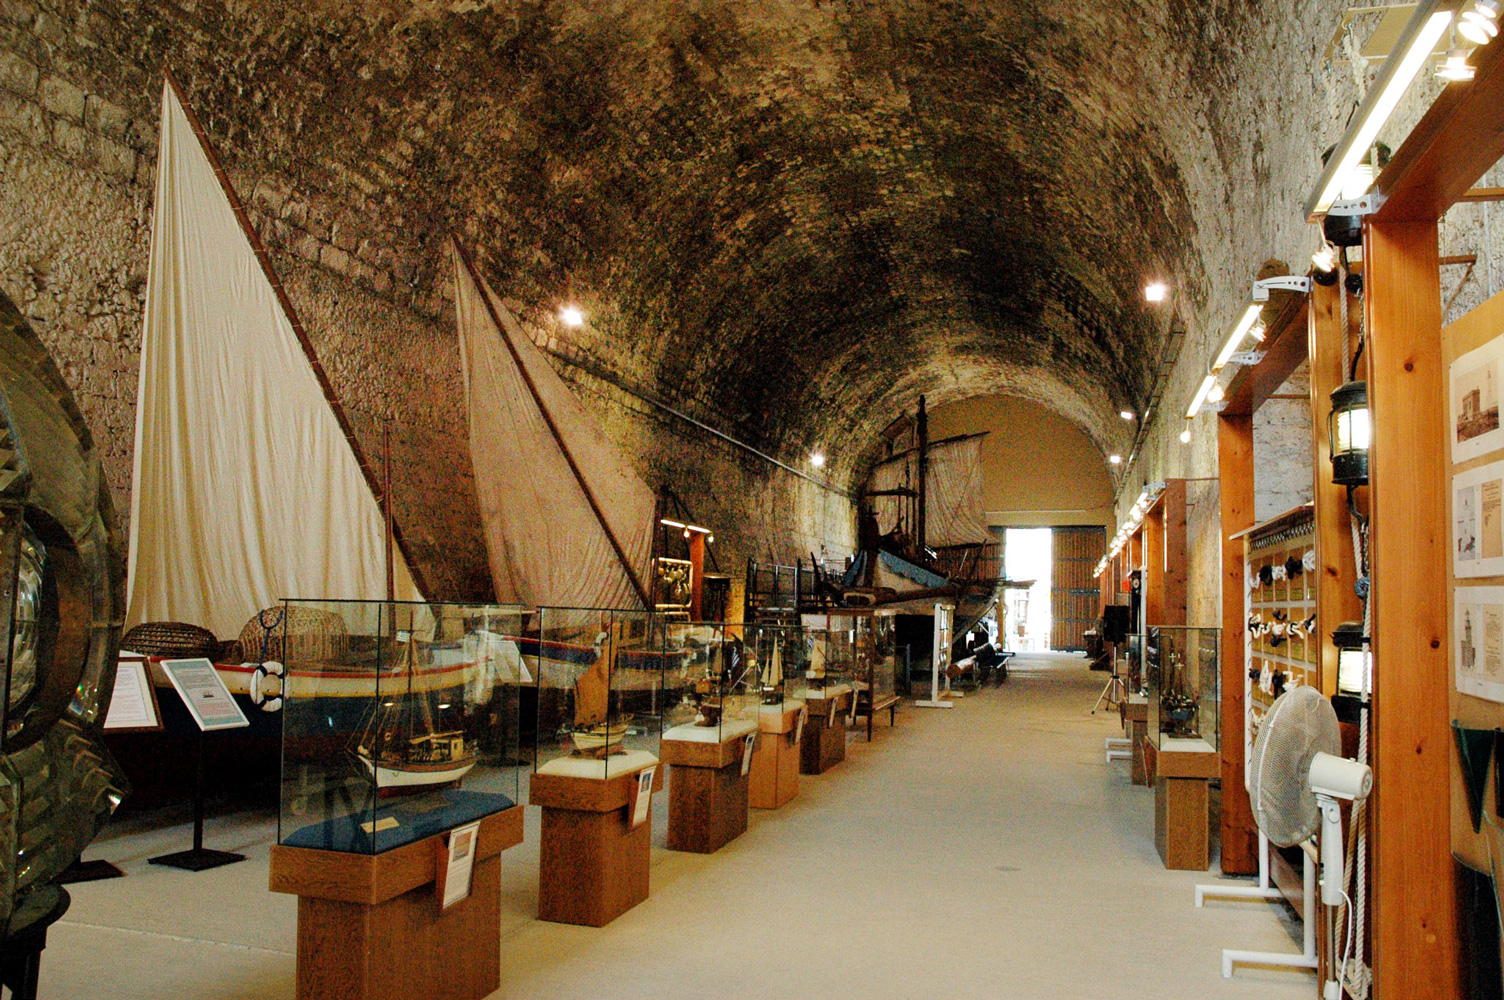 Storage room for sailing ships